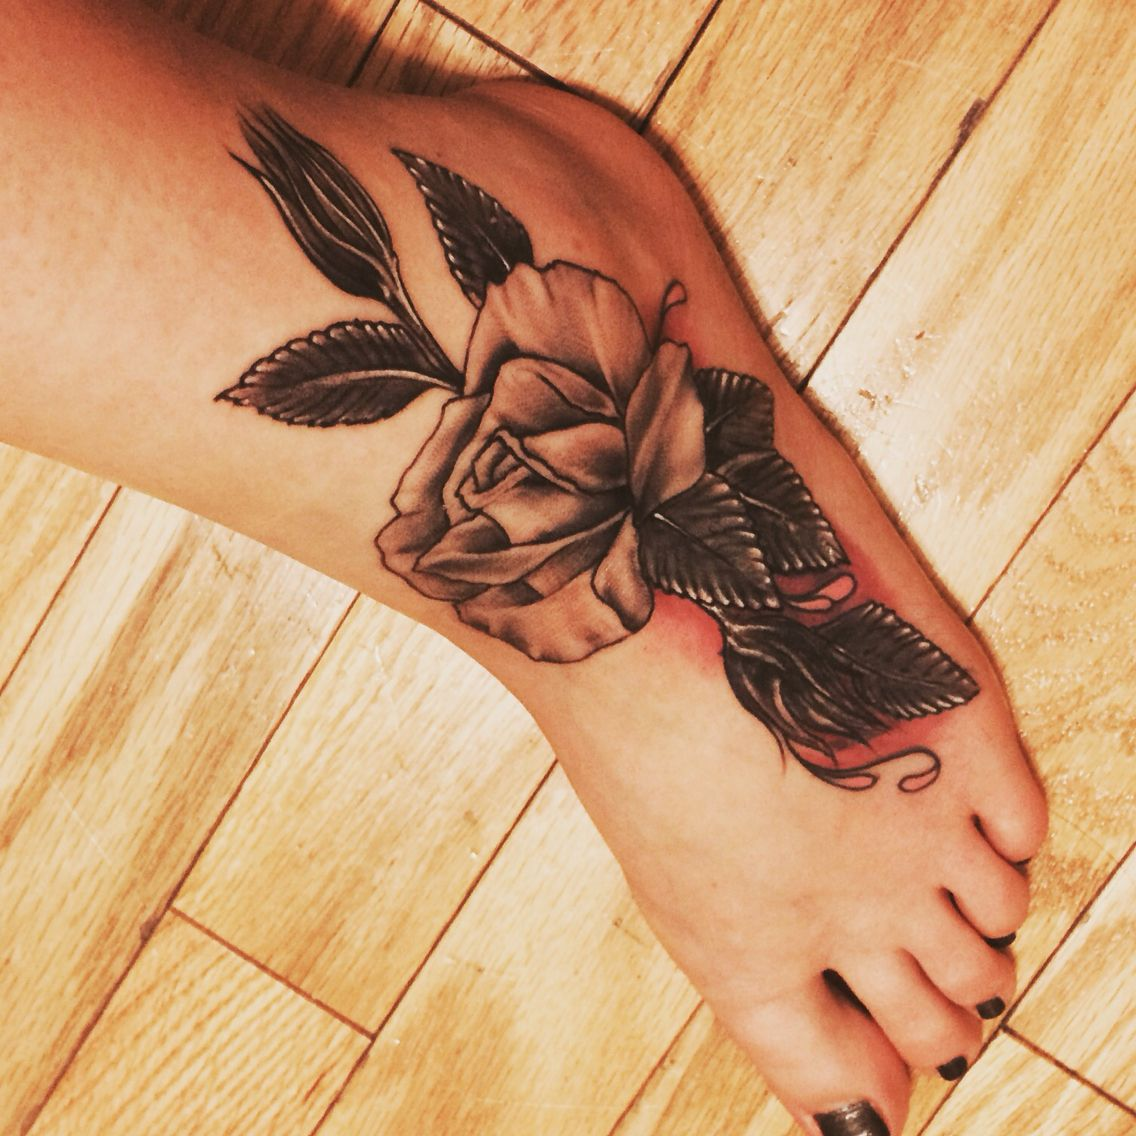 Foot tattoo. Cover up. Roses. Girly! Cover up tattoos